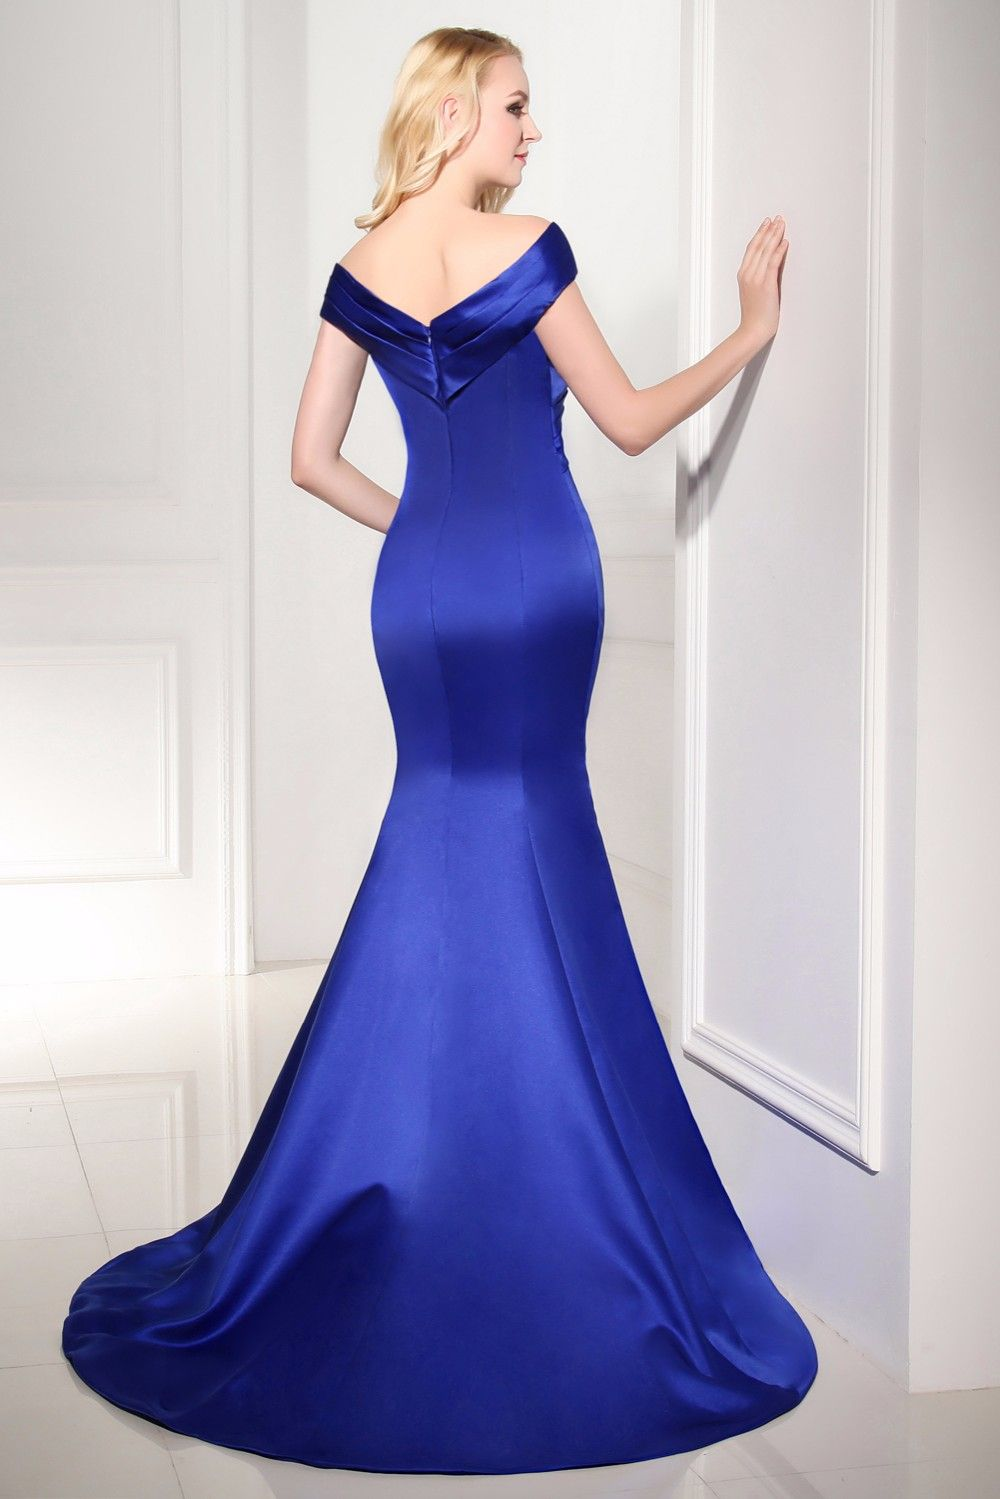 Arrival mermaid royal blue long evening dress v neck floor length